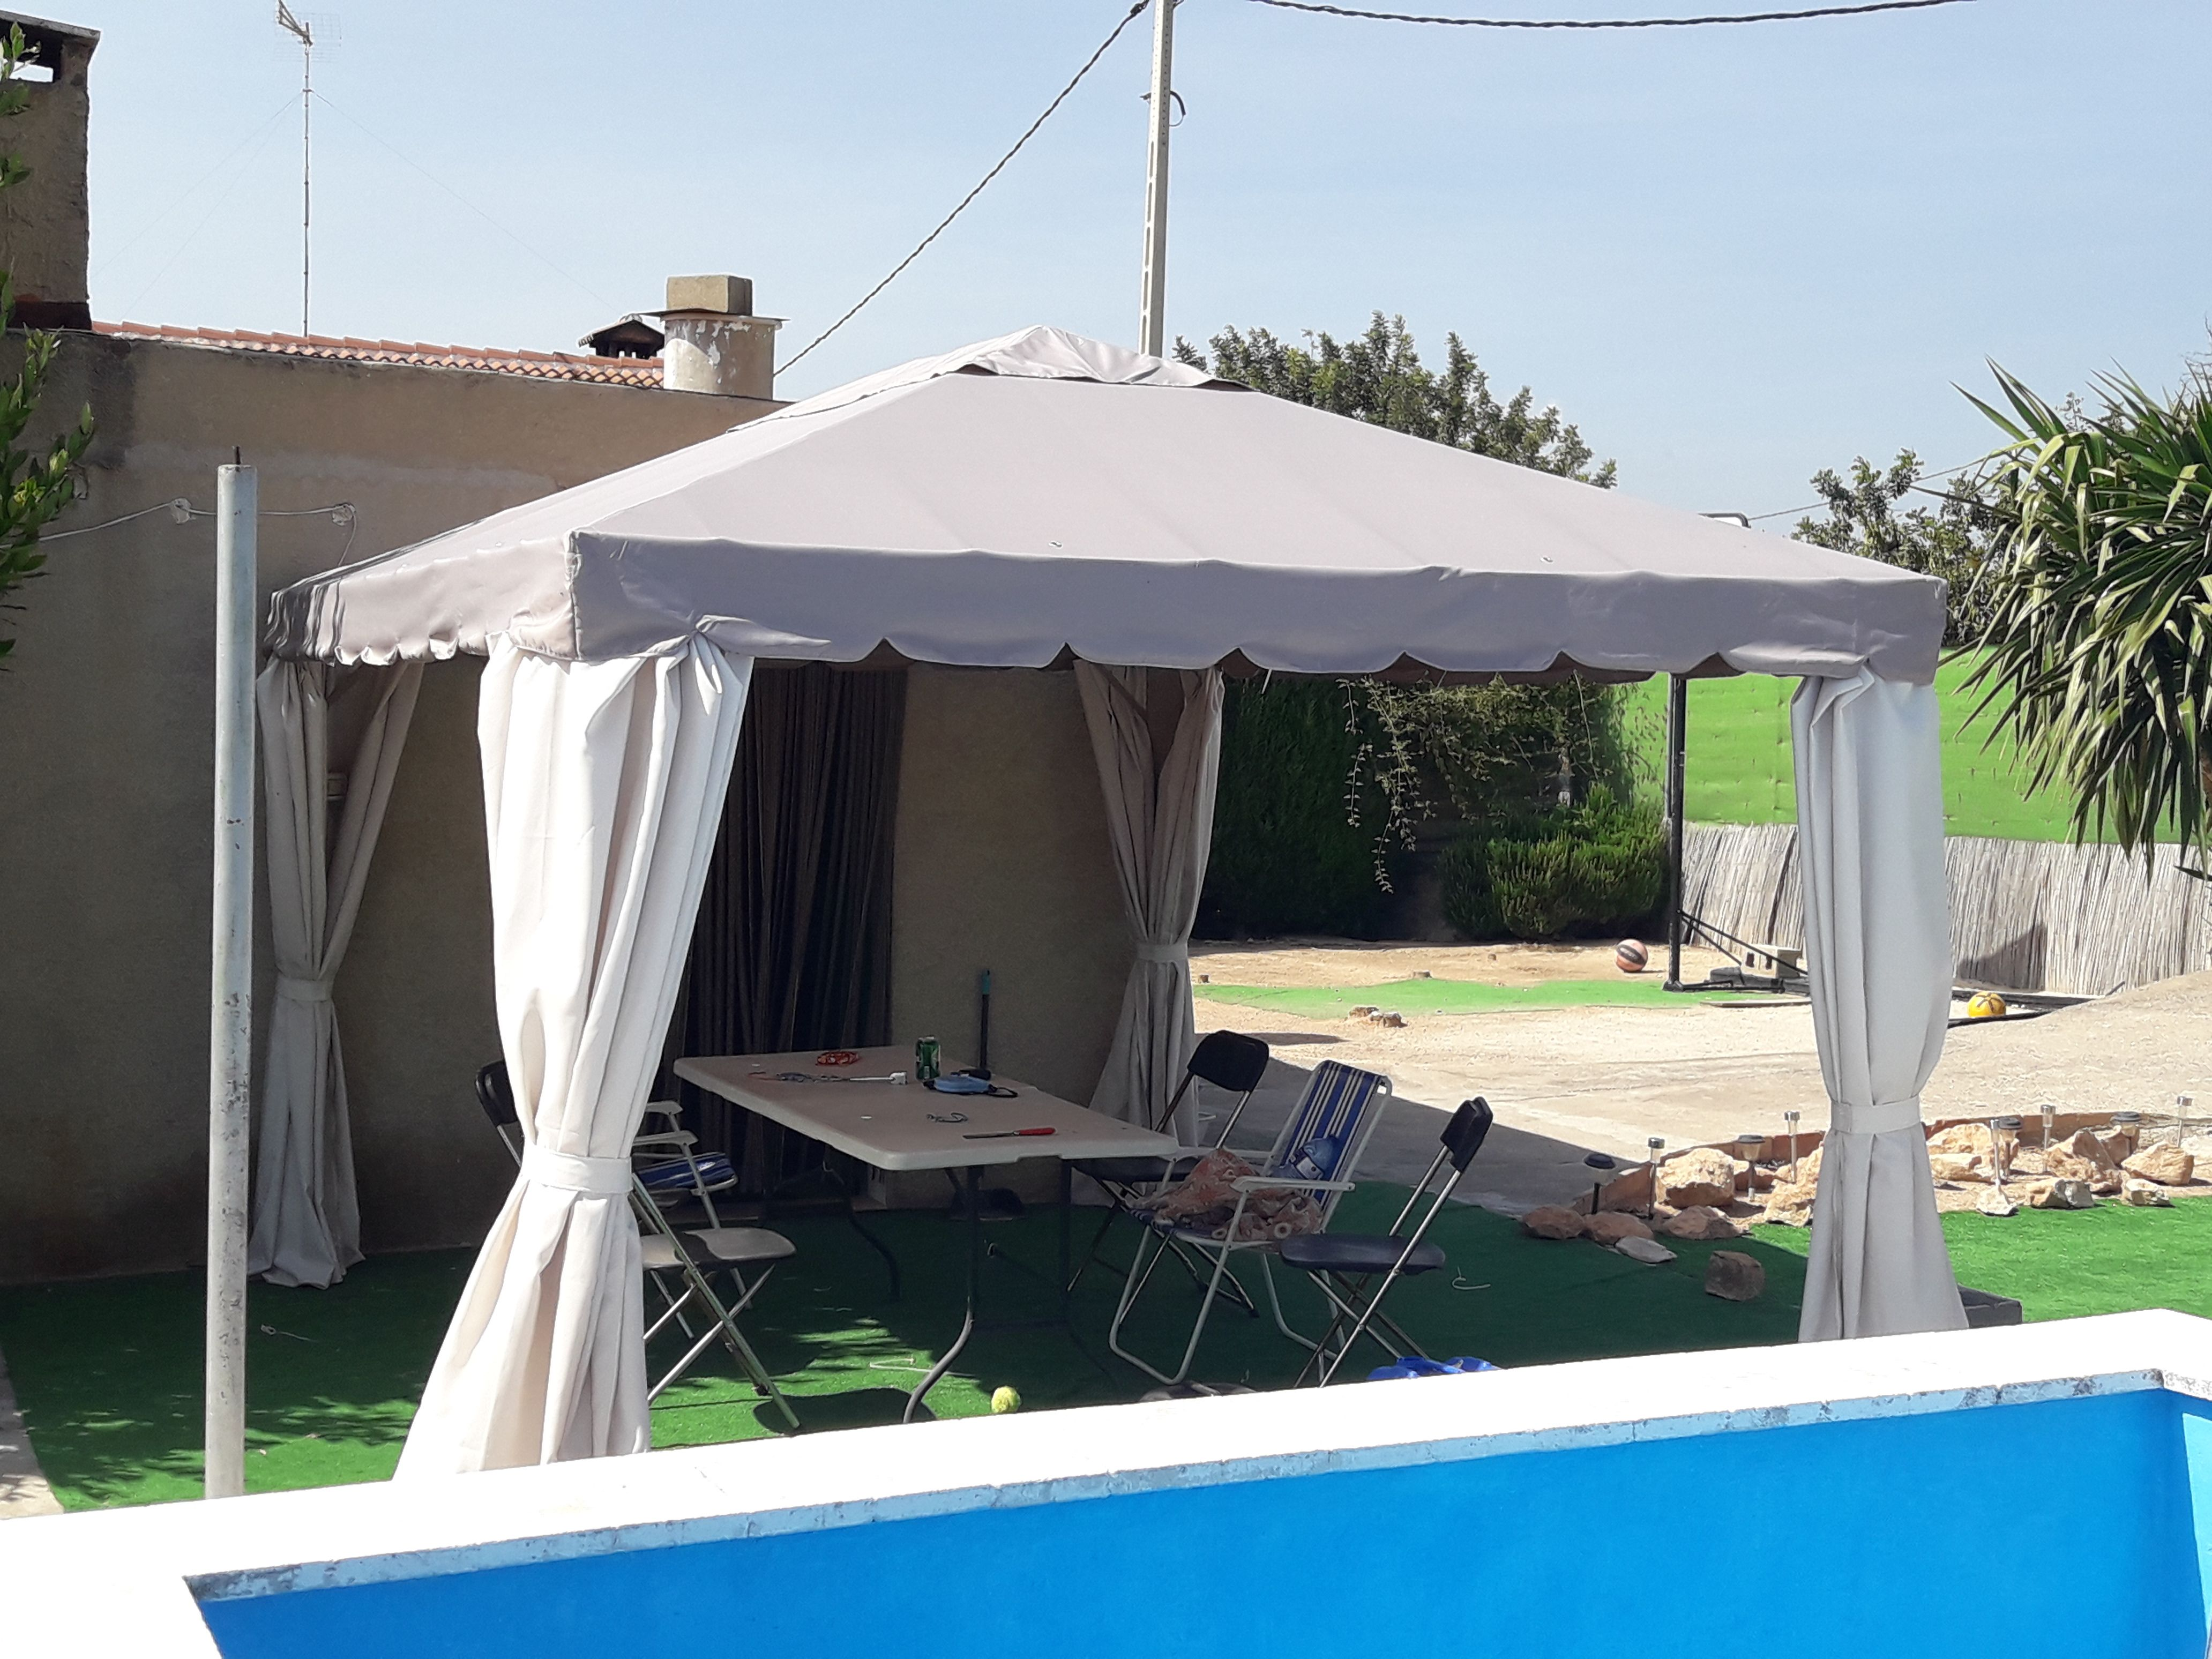 Repuesto toldo pergola 3x3 excellent imagen imagen with for Lona repuesto toldo